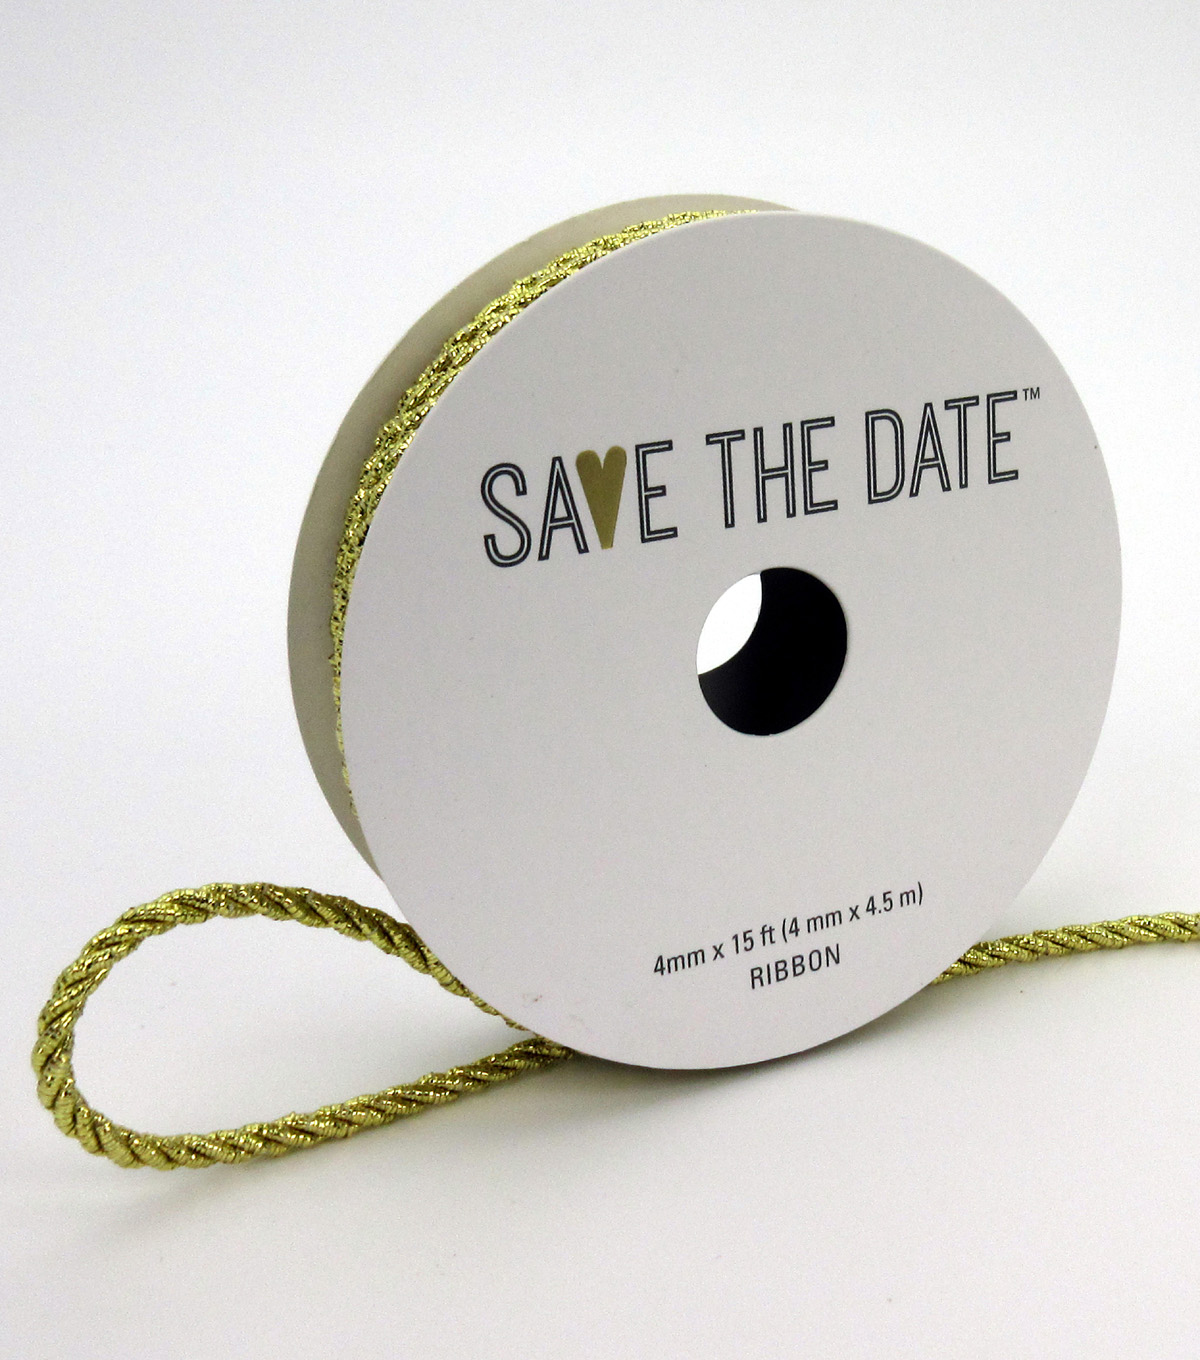 Save the Date 4mm x 15ft Cord-Gold Metallic